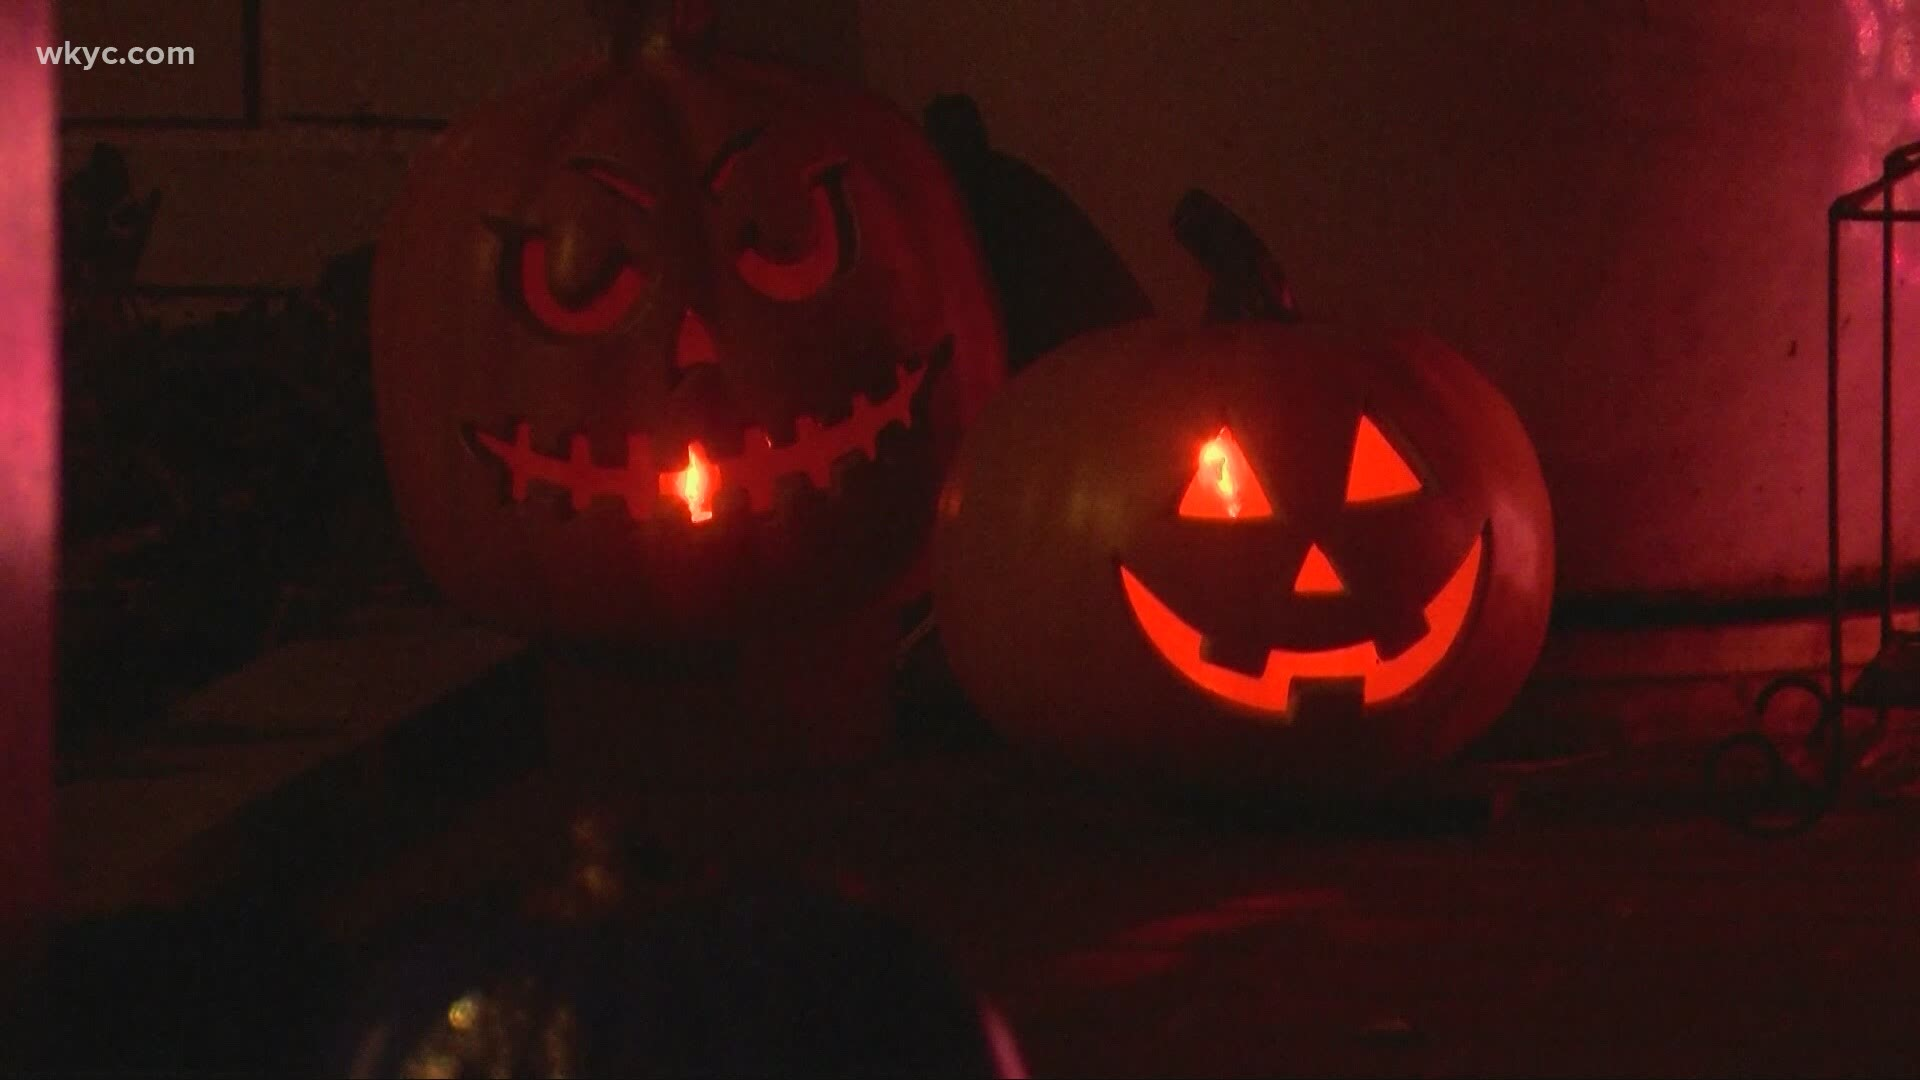 Halloween 2020 Cuyahoga Falls Northeast Ohio's trick or treat times for 2020 | wkyc.com